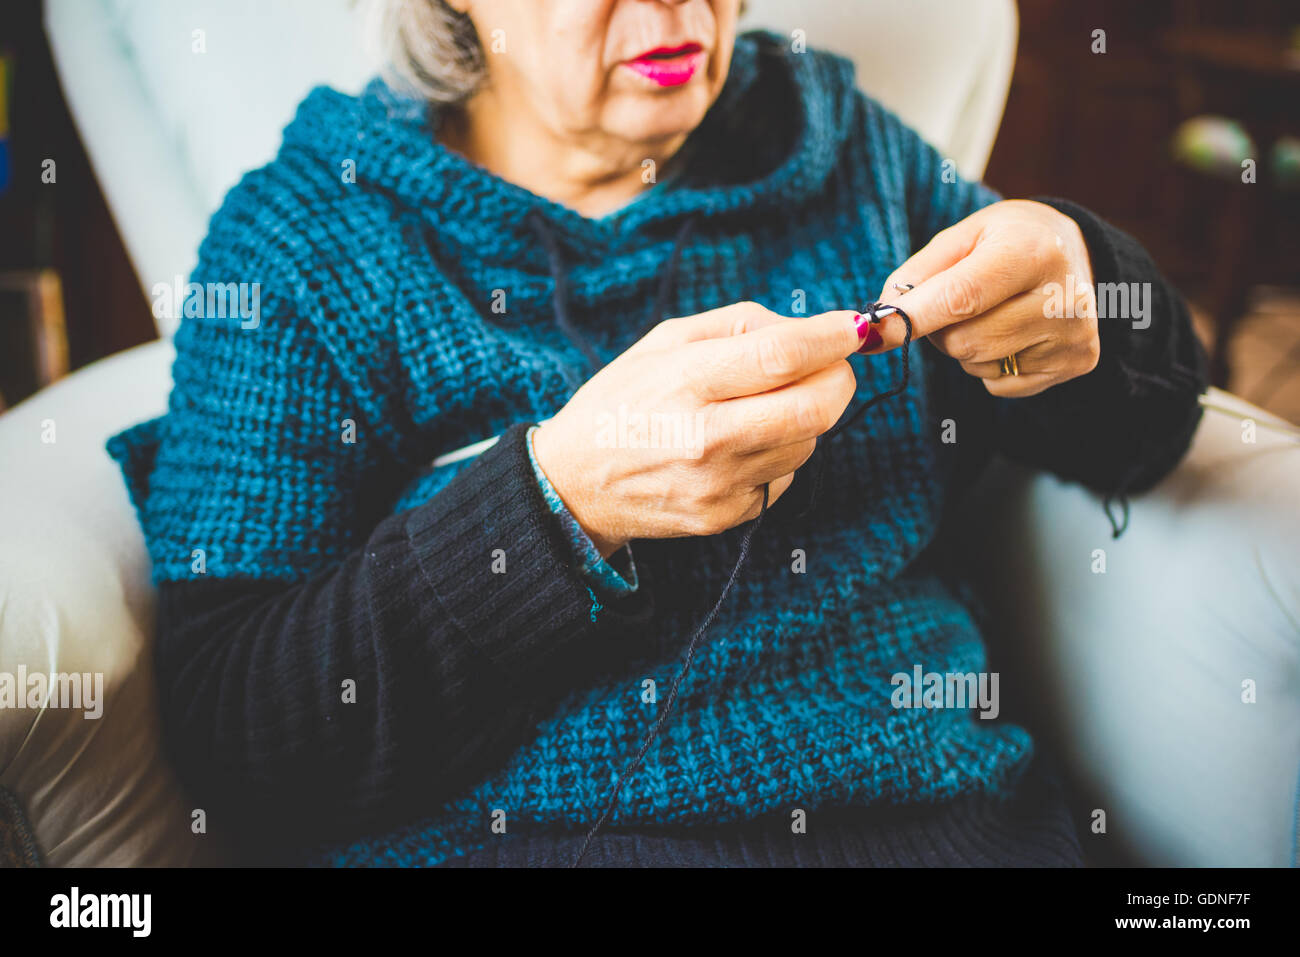 Hands of a woman knitting with knitting needles and woolen yarn, filtered vintage - handcraft, hobby concept - Stock Image